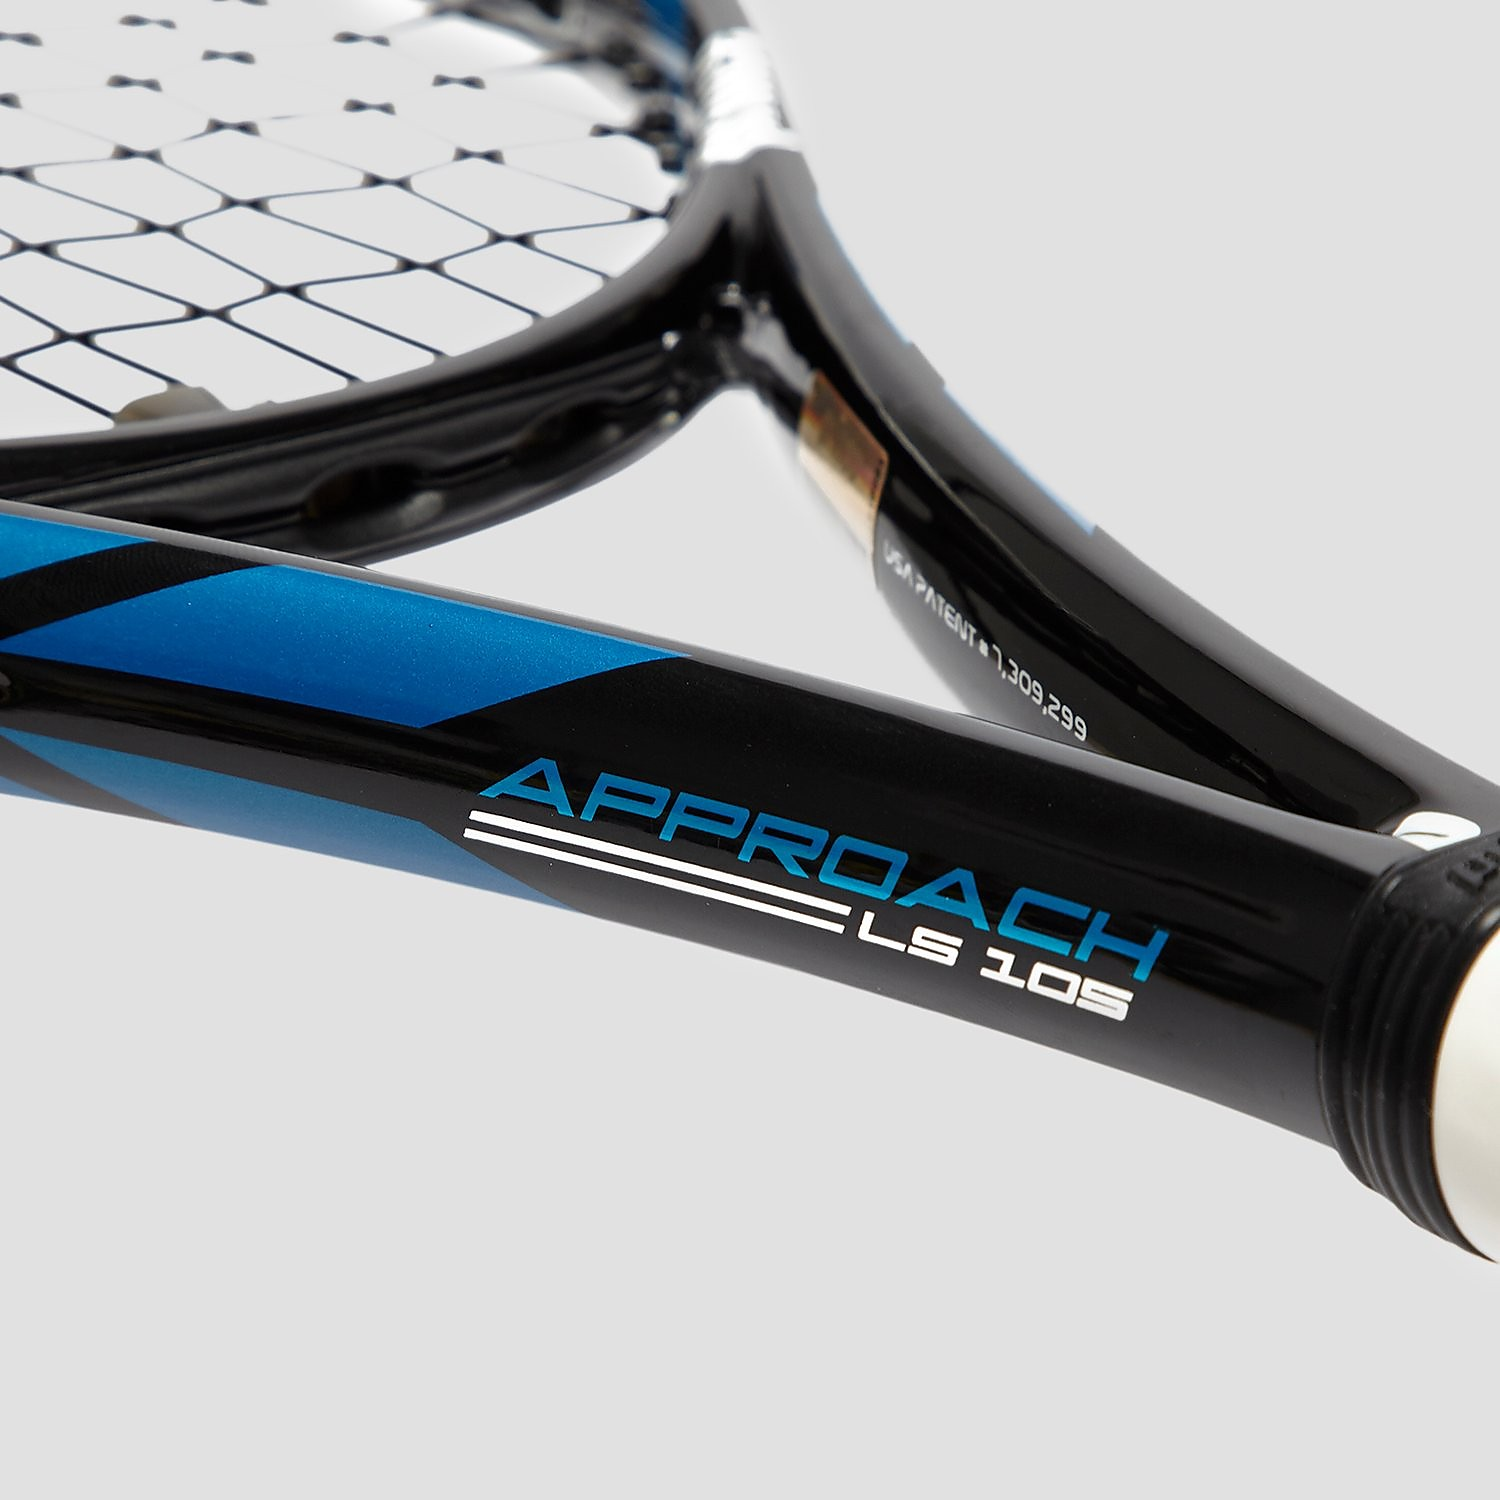 Prince Approach LS 105 Tennis Racket